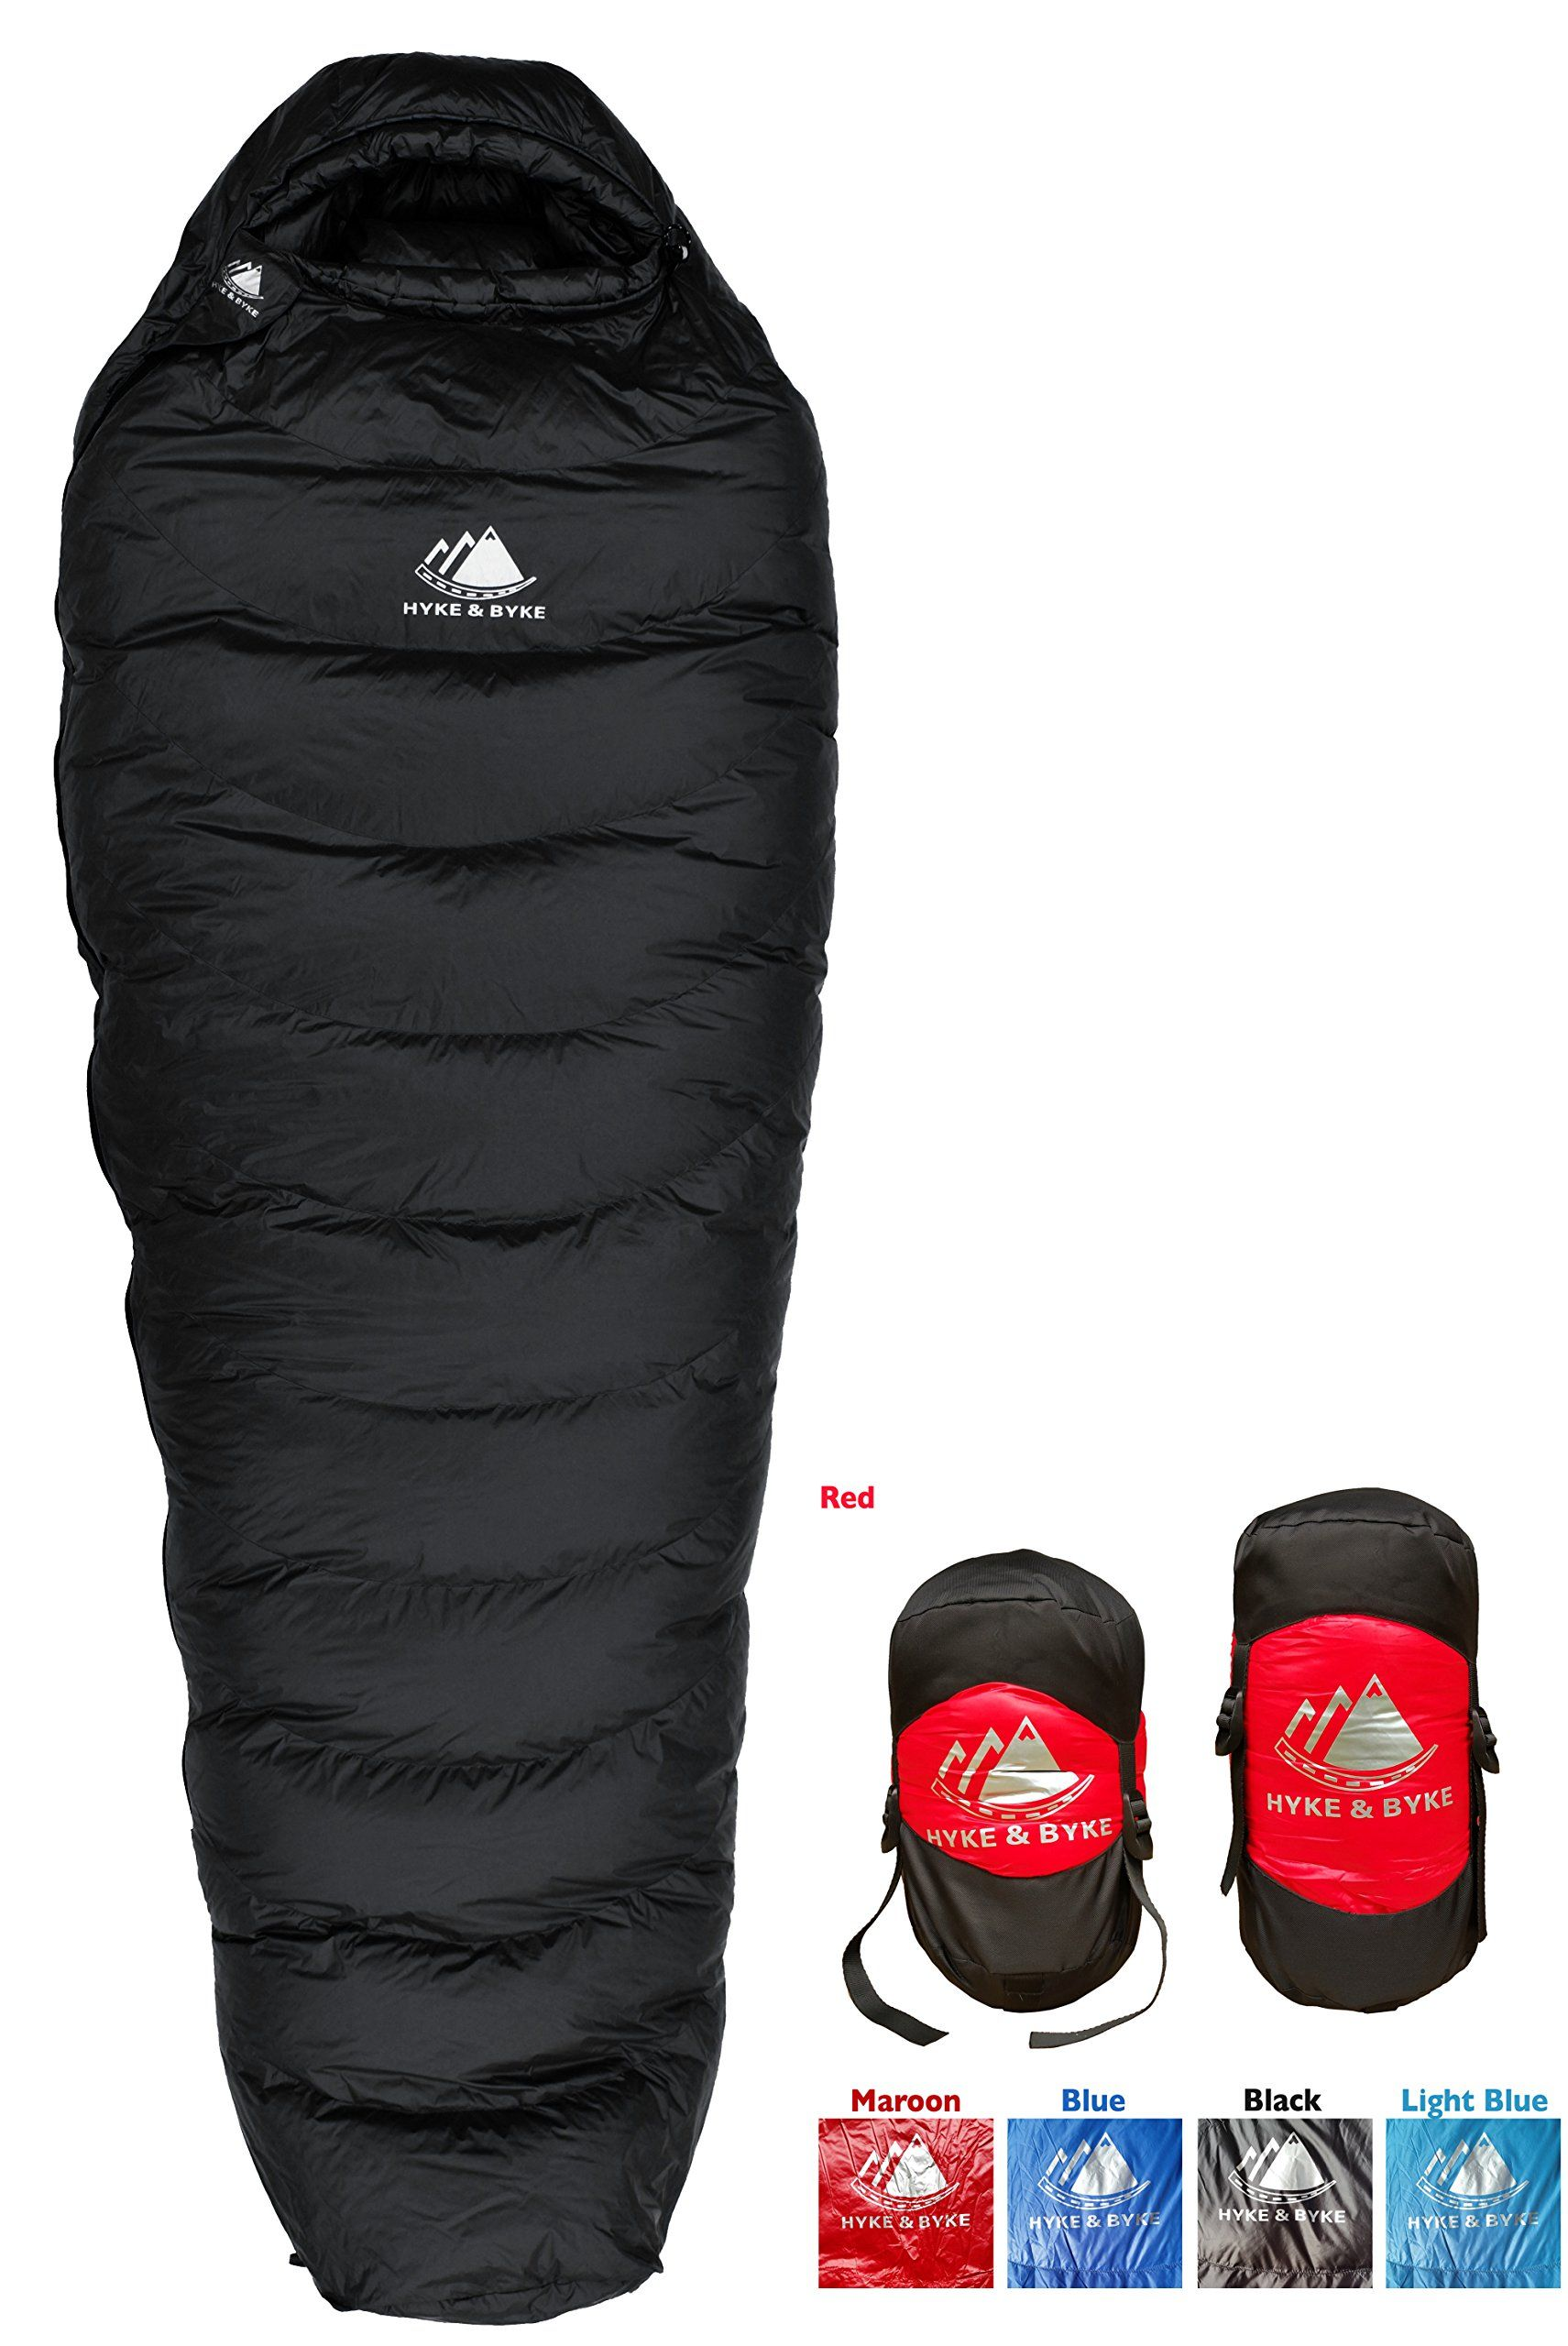 Hyke Byke Snowmass 0 Degree Down Sleeping Bag For Backng Ultralight Mummy